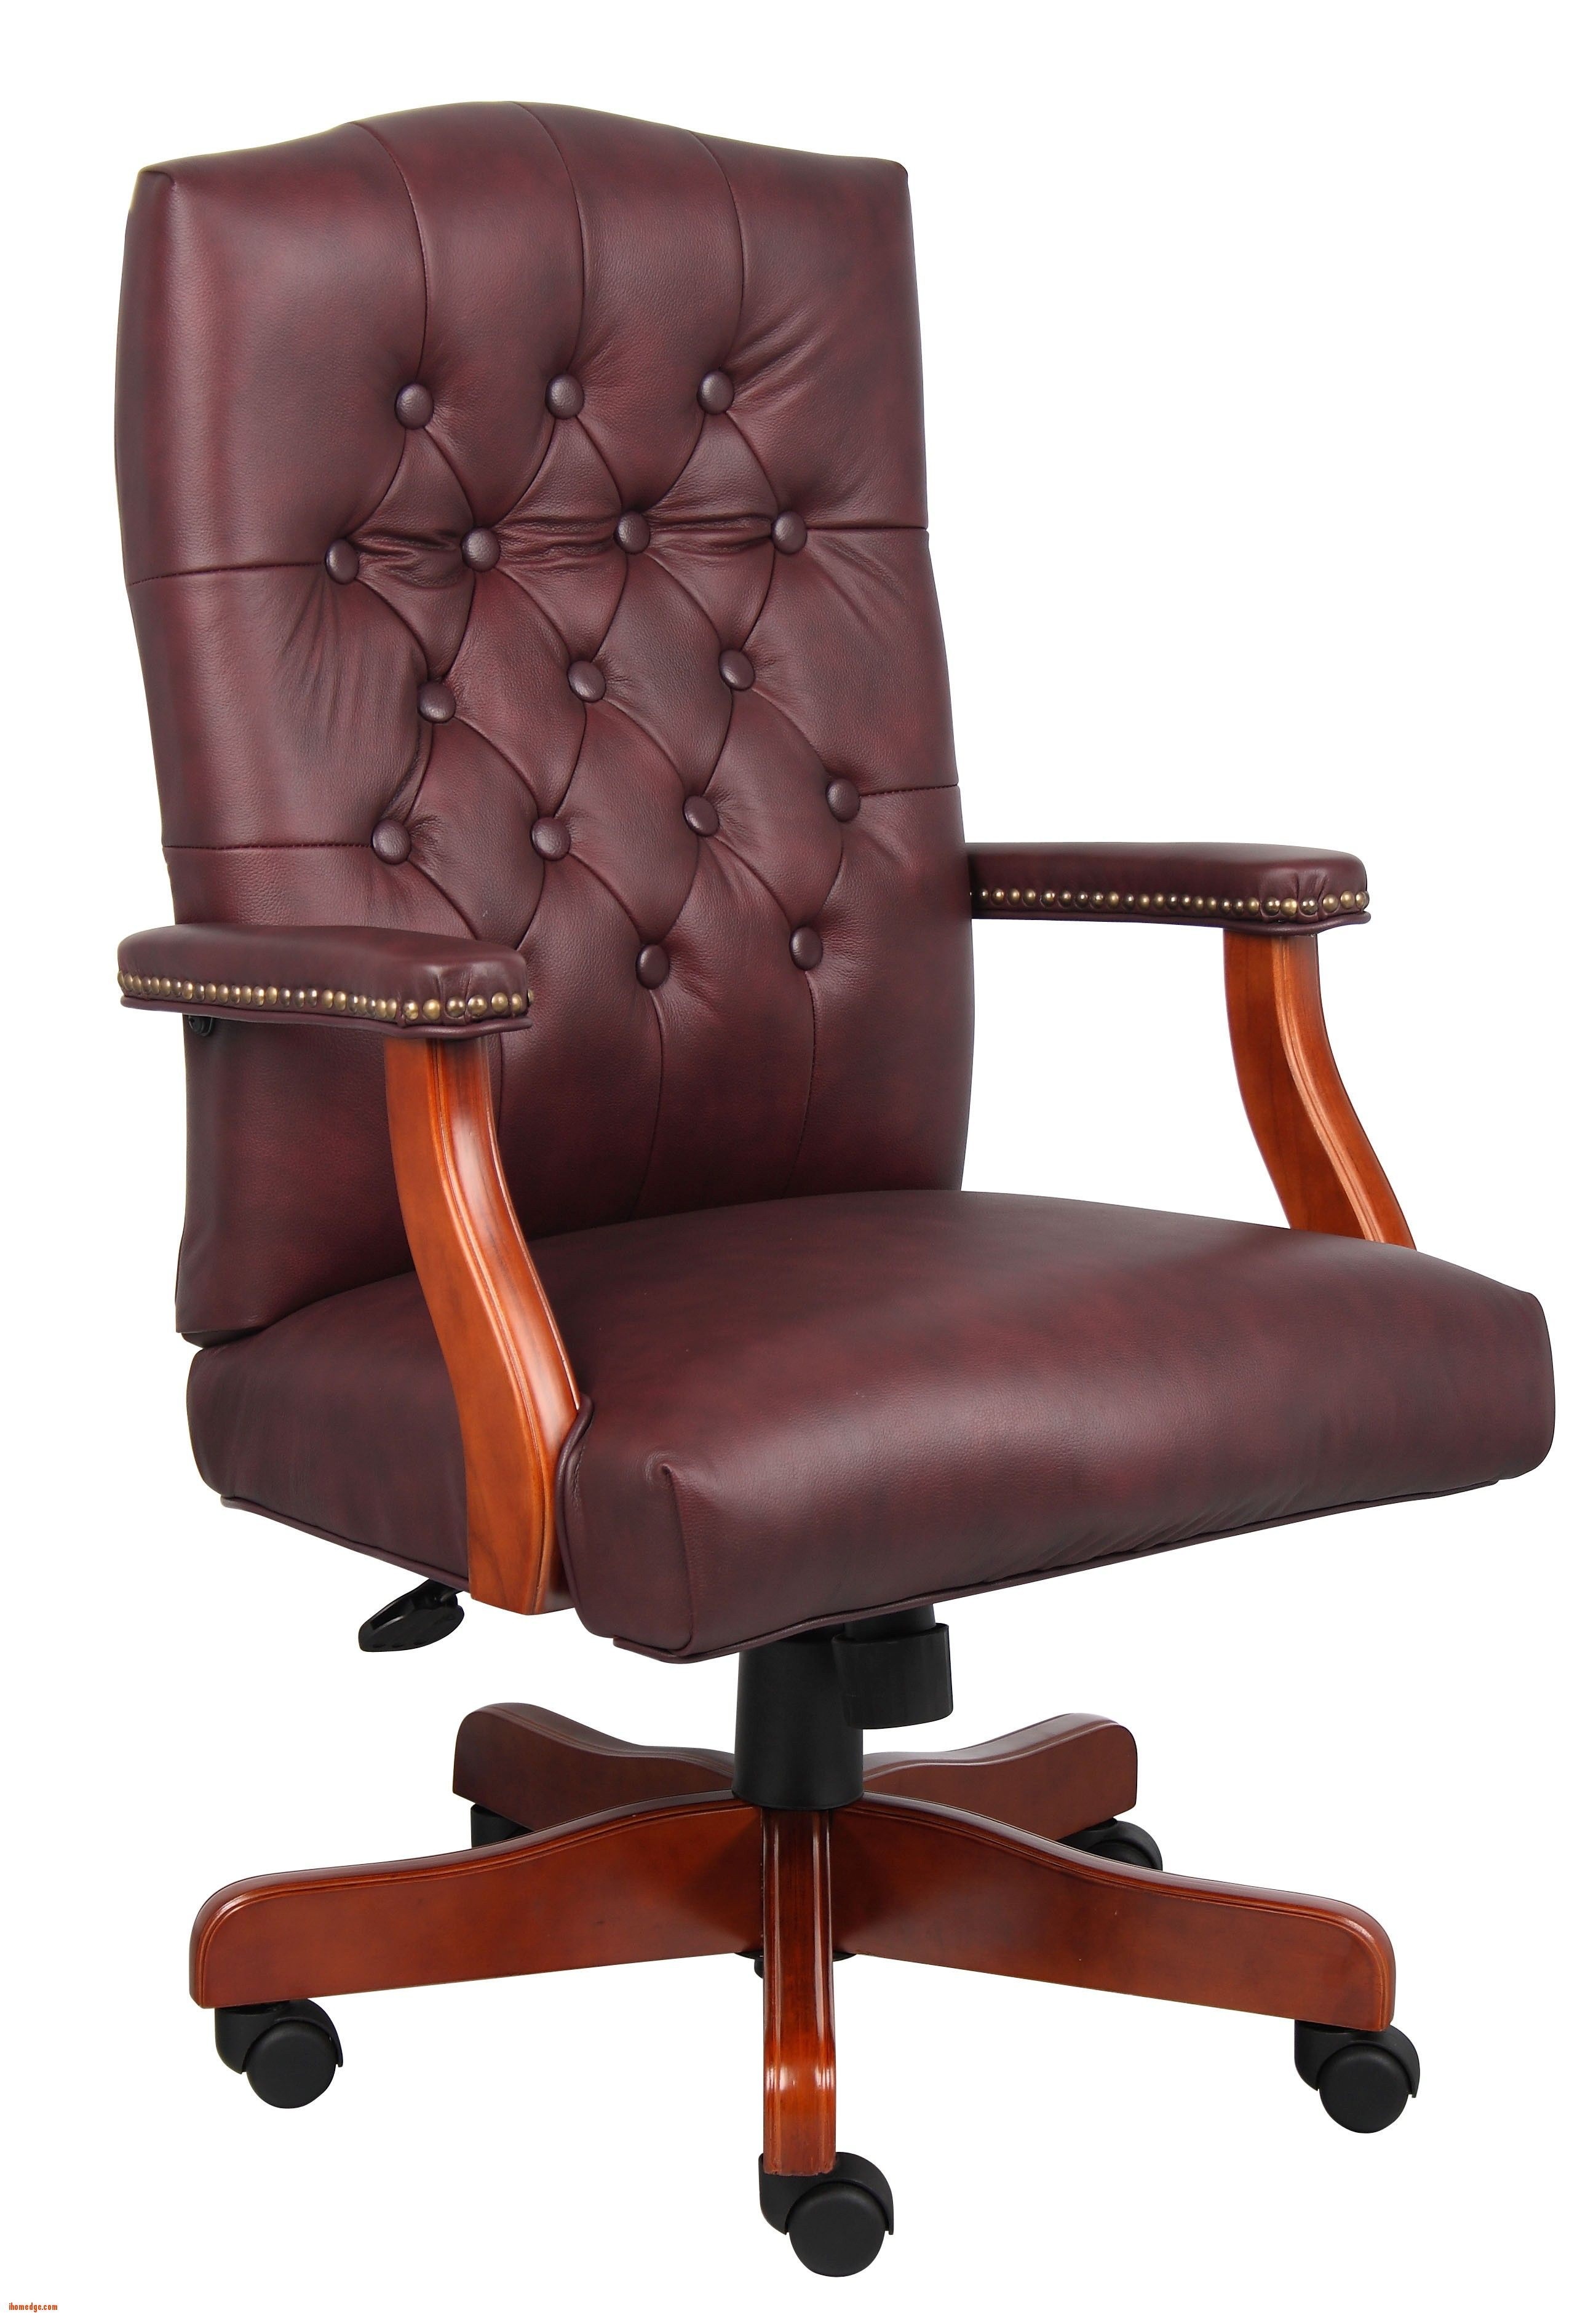 New Fresh Luxury Office Chairs Boss Italian Leather Executive Chair Leather Home Fice Chairs Luxury Office Chairs Office Chairs For Sale Leather Office Chair